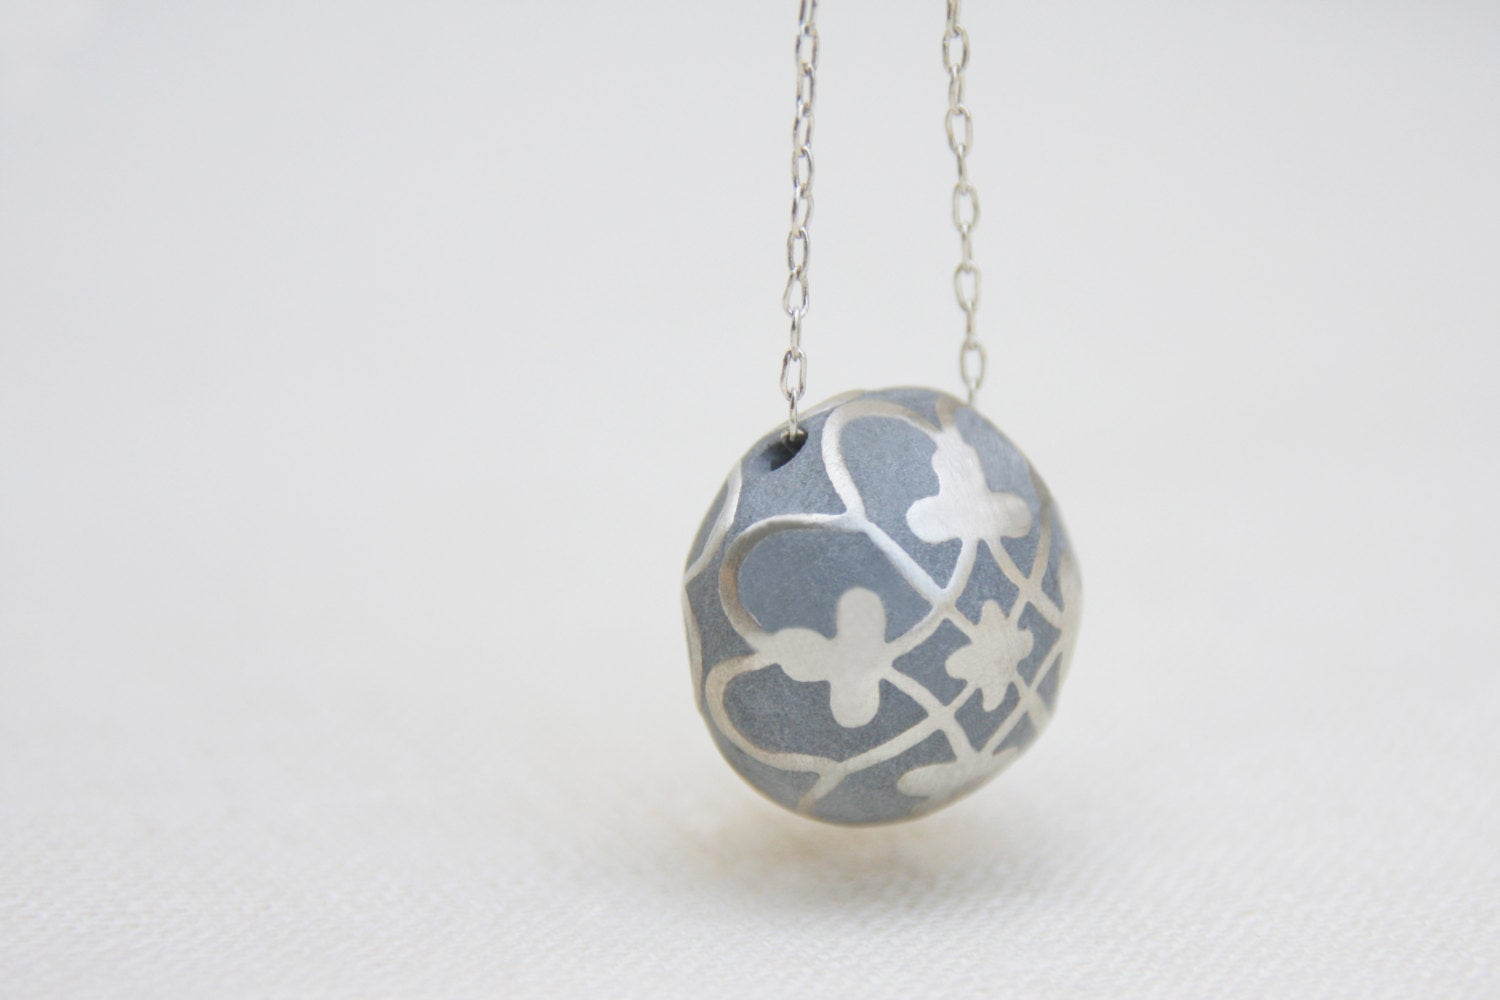 Ethnic silver & Concrete Ball Necklace - hs